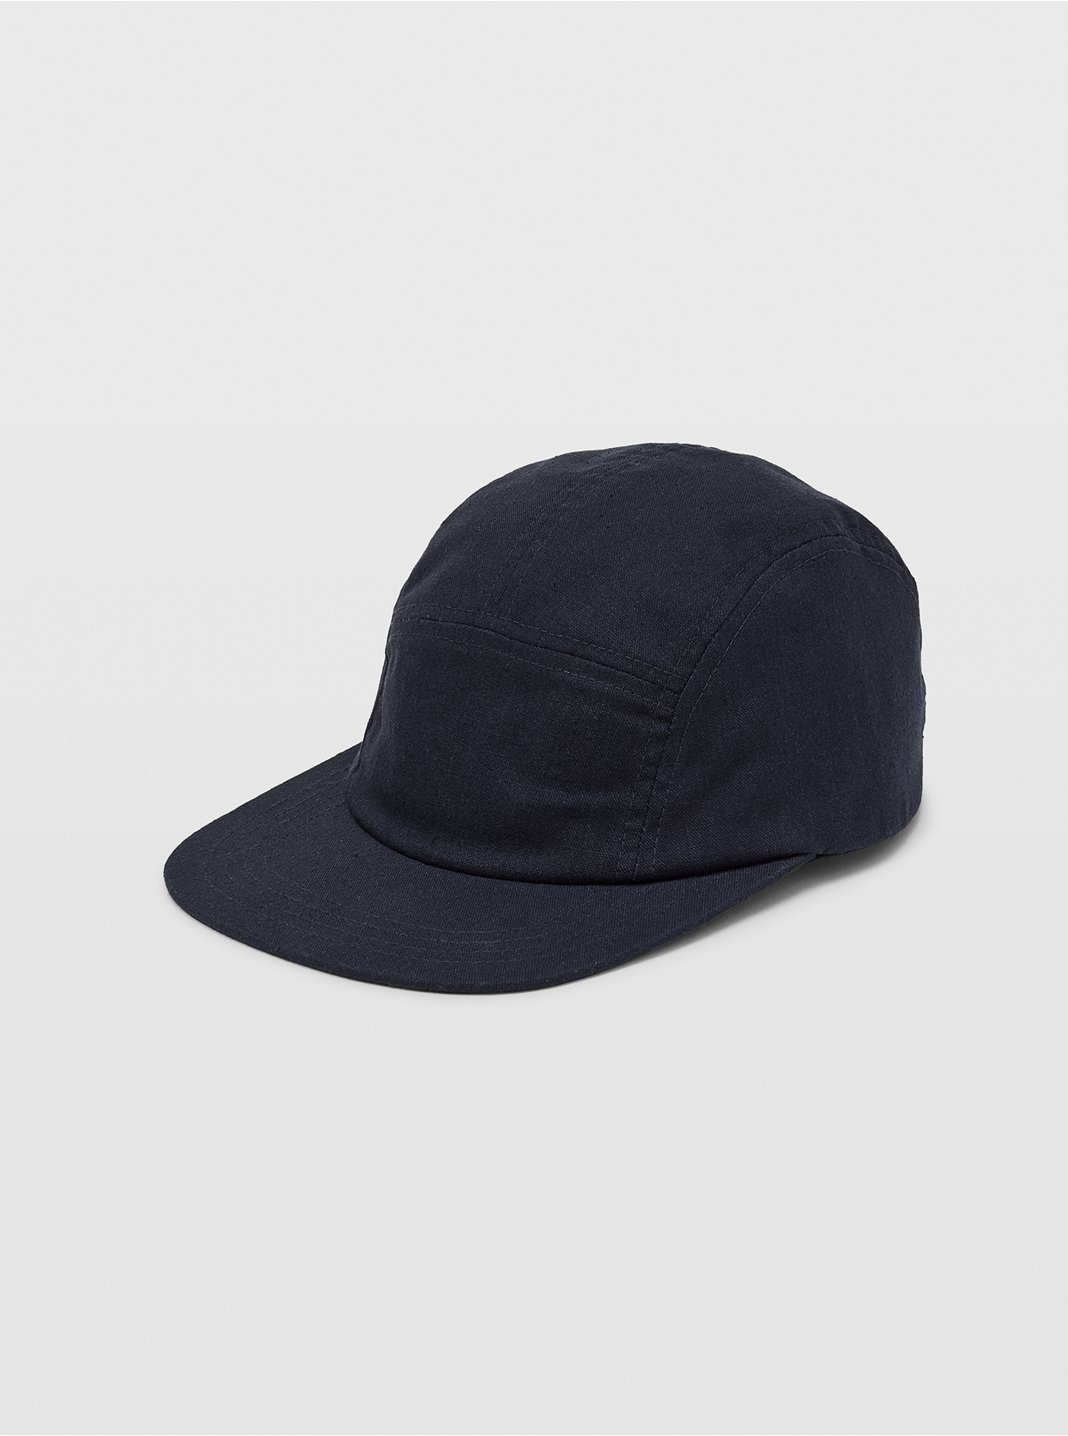 Five Panel Baseball Cap